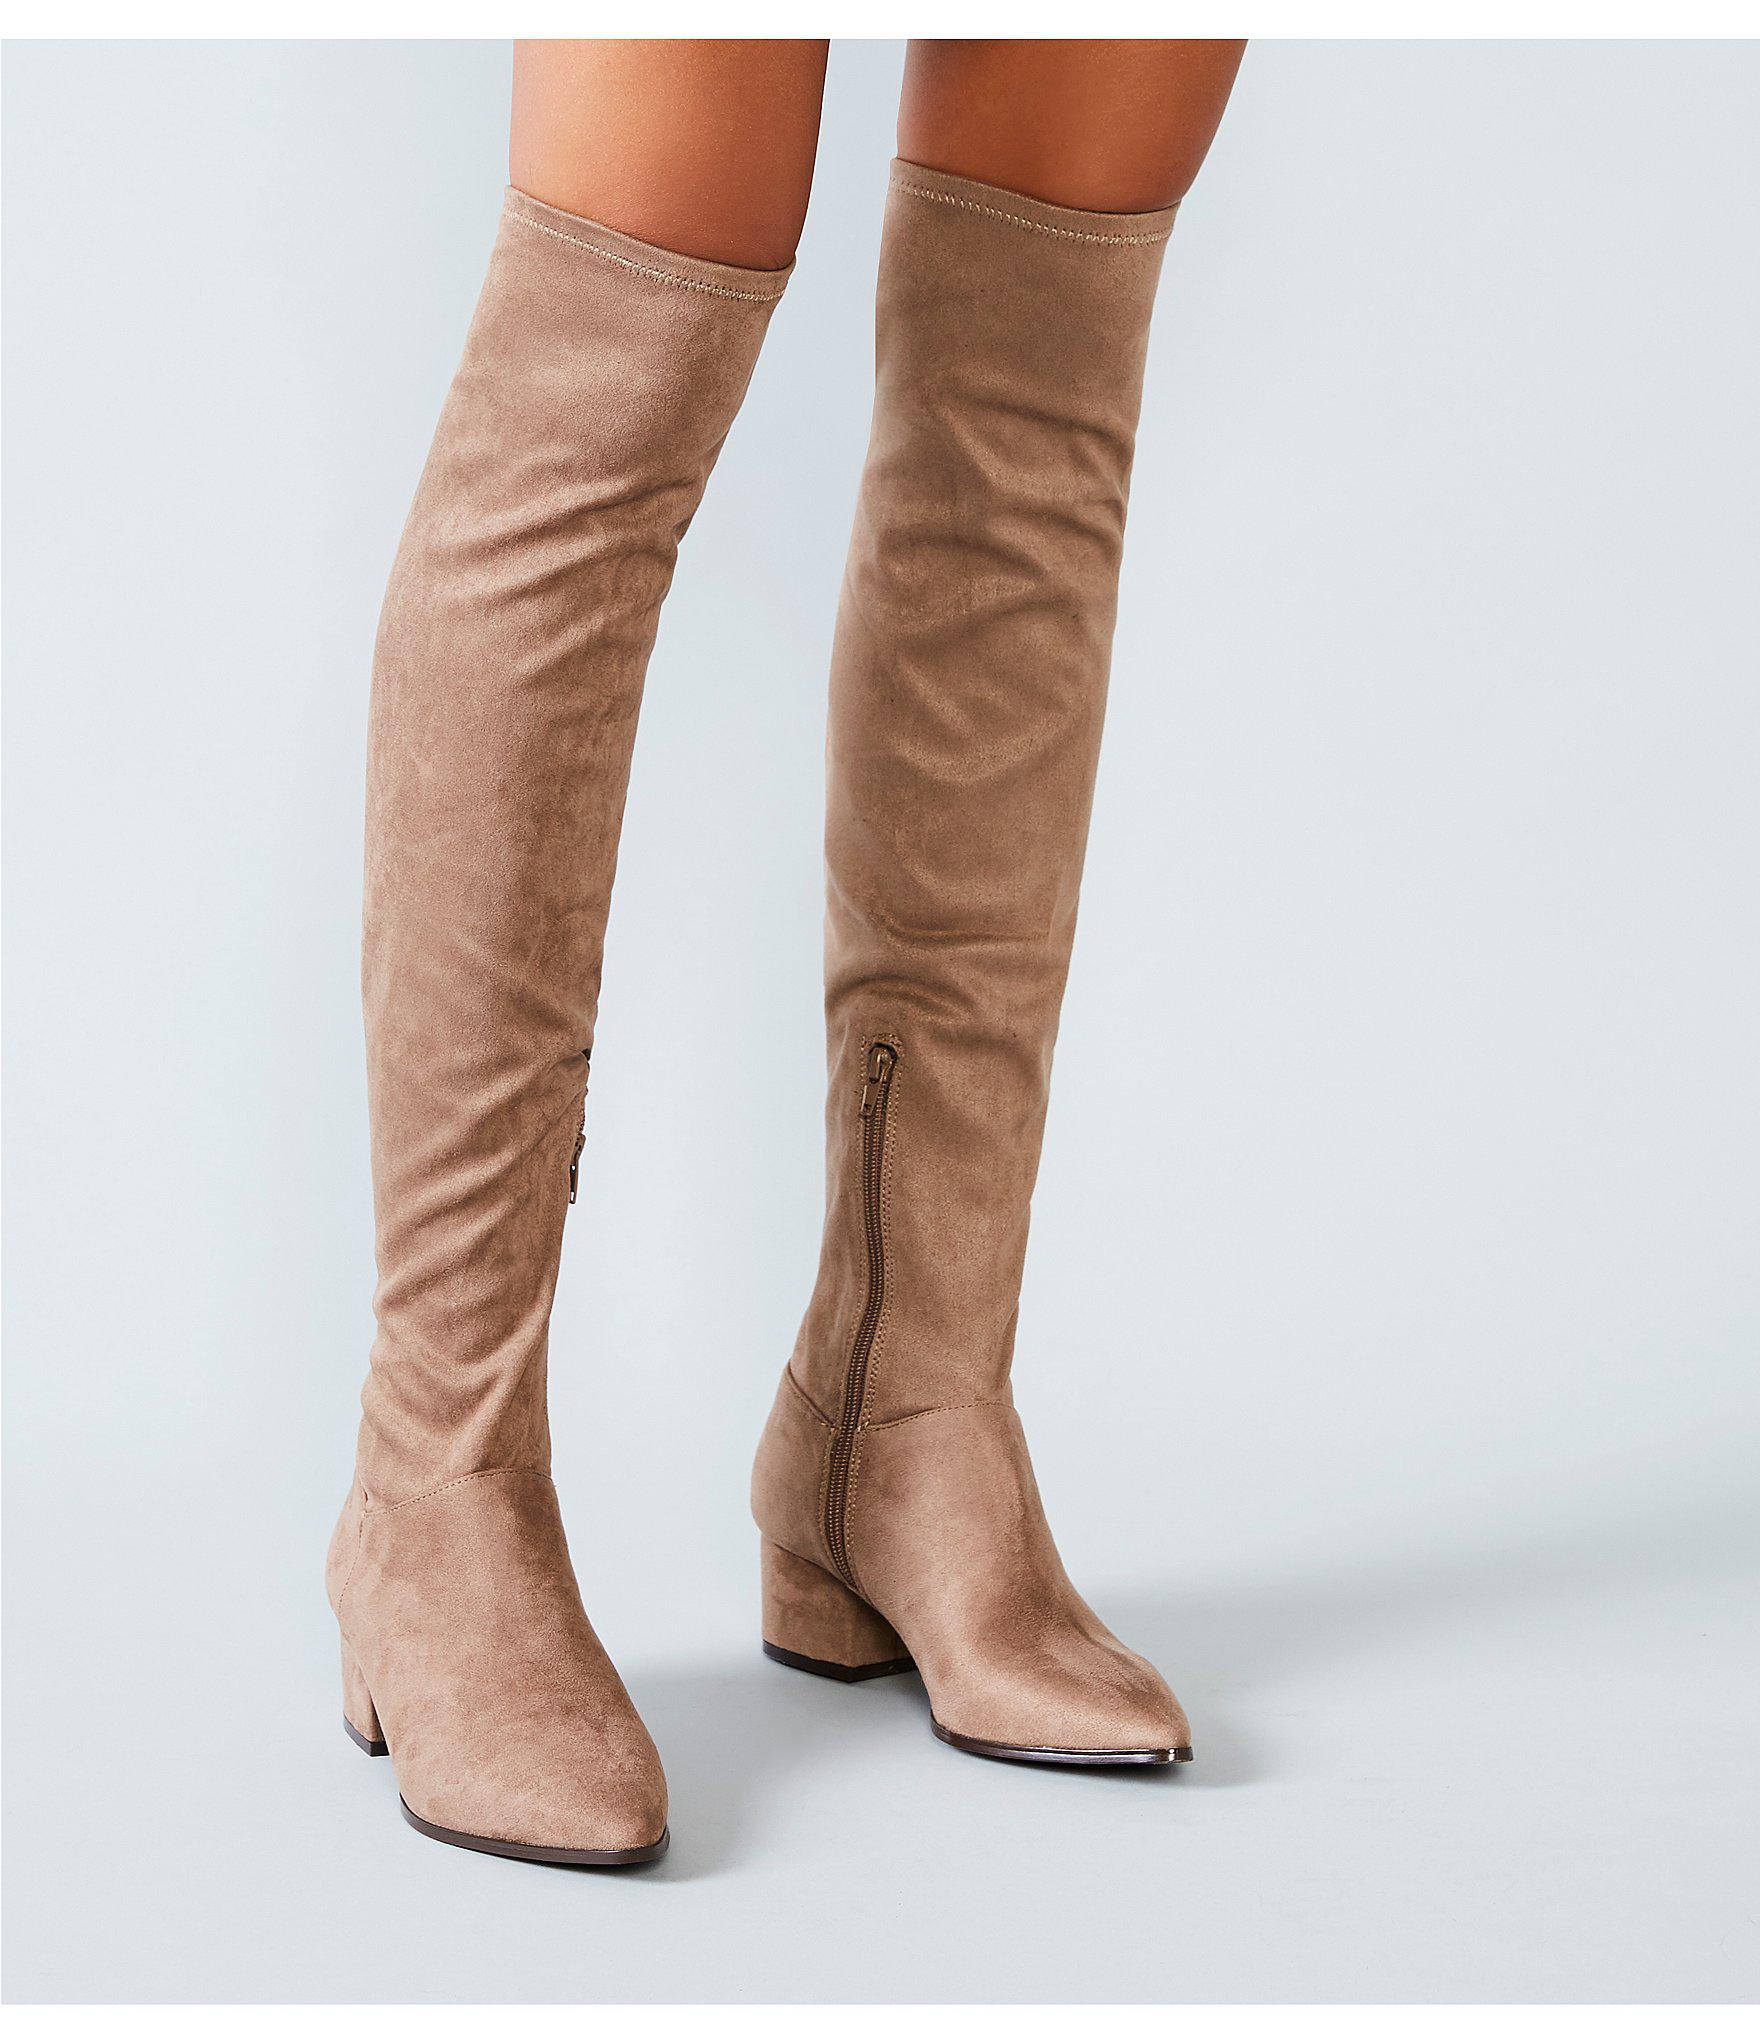 fdded18492e2 Steve Madden Carli Over The Knee Block Heel Boots in Brown - Lyst